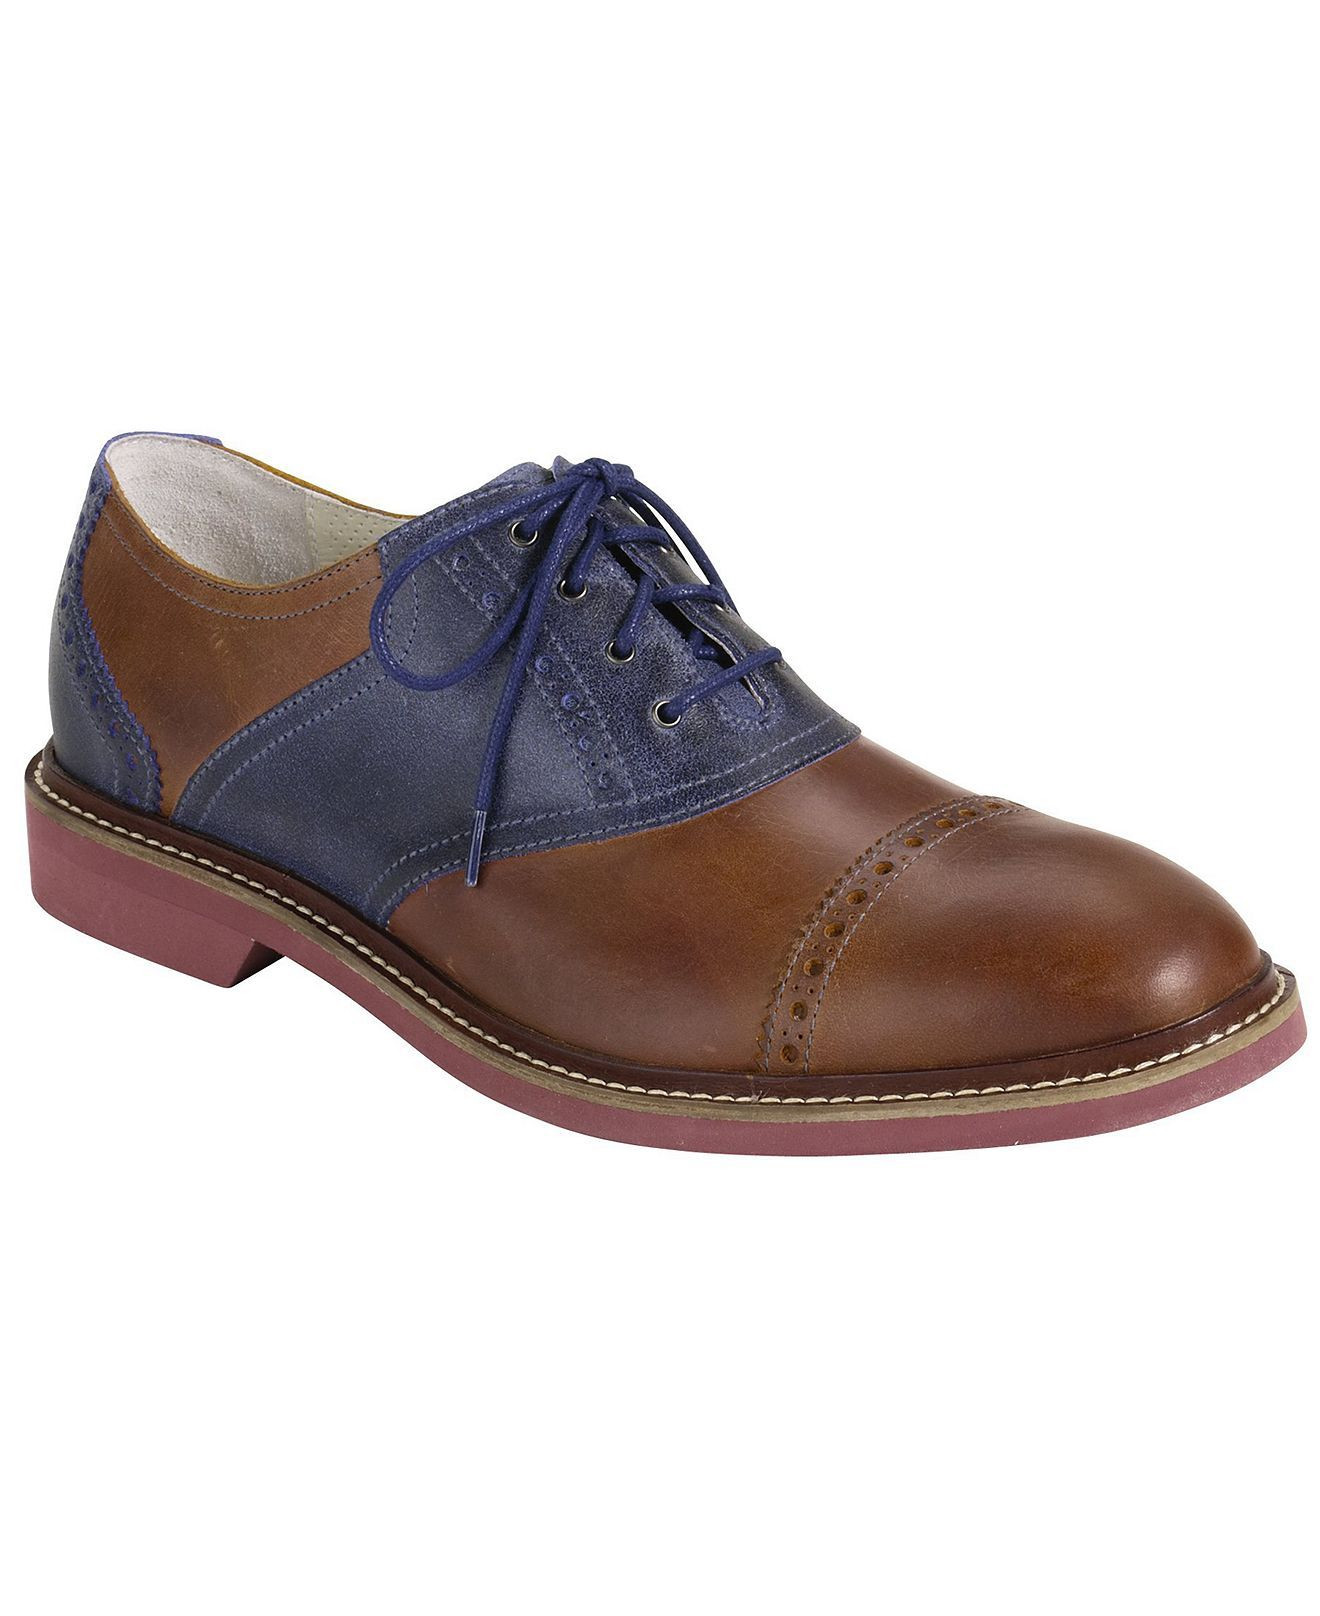 54b94e2d7e I WANT THESE Cole Haan Air